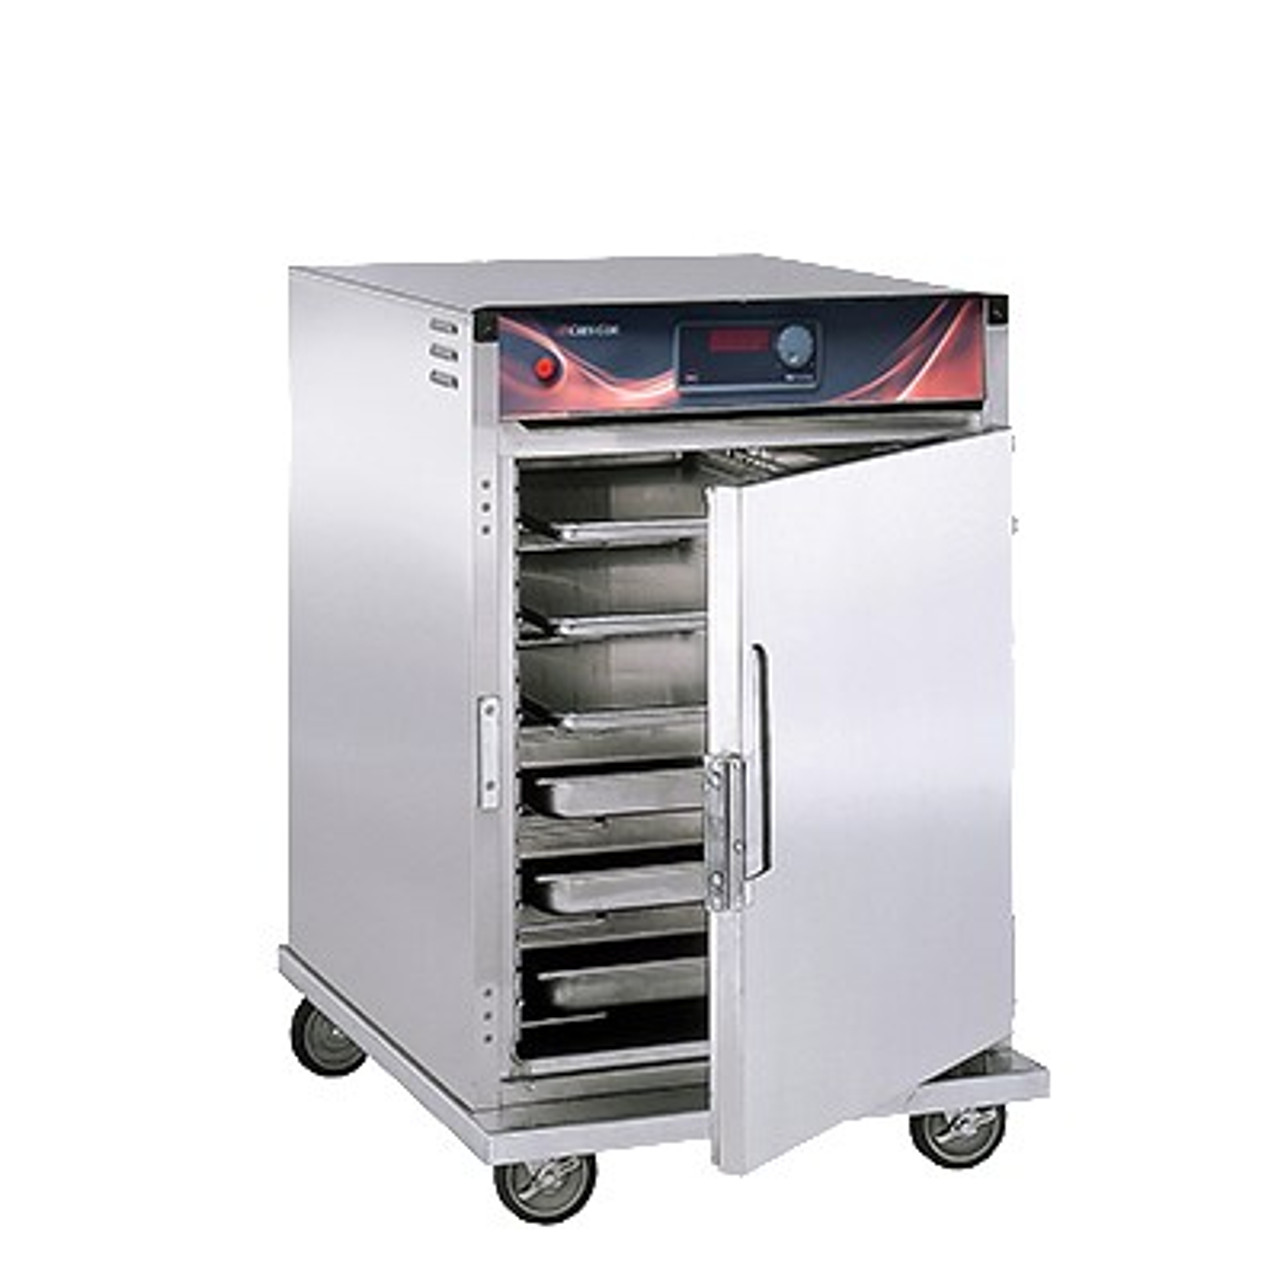 """Cabinet, Mobile Heated, intermediate height, insulated, top-mount heater assembly, magnetic latch, recessed push/pull handles, (9) sets of chrome plated wire universal angle slides on 4-1/2"""" centers adjustable 1-1/2"""" centers, solid state electronic control, LED digital display, field reversible doors, (4) heavy duty 5"""" swivel casters (2) braked, anti-microbial latches, stainless steel exterior & interior, NSF, cCSAus, ENERGY STAR®"""